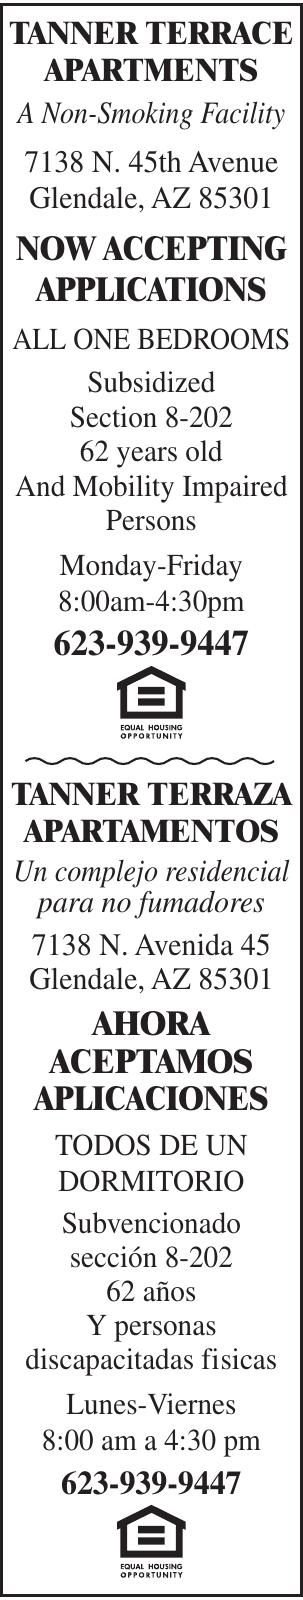 Tanner Terrace Apartments